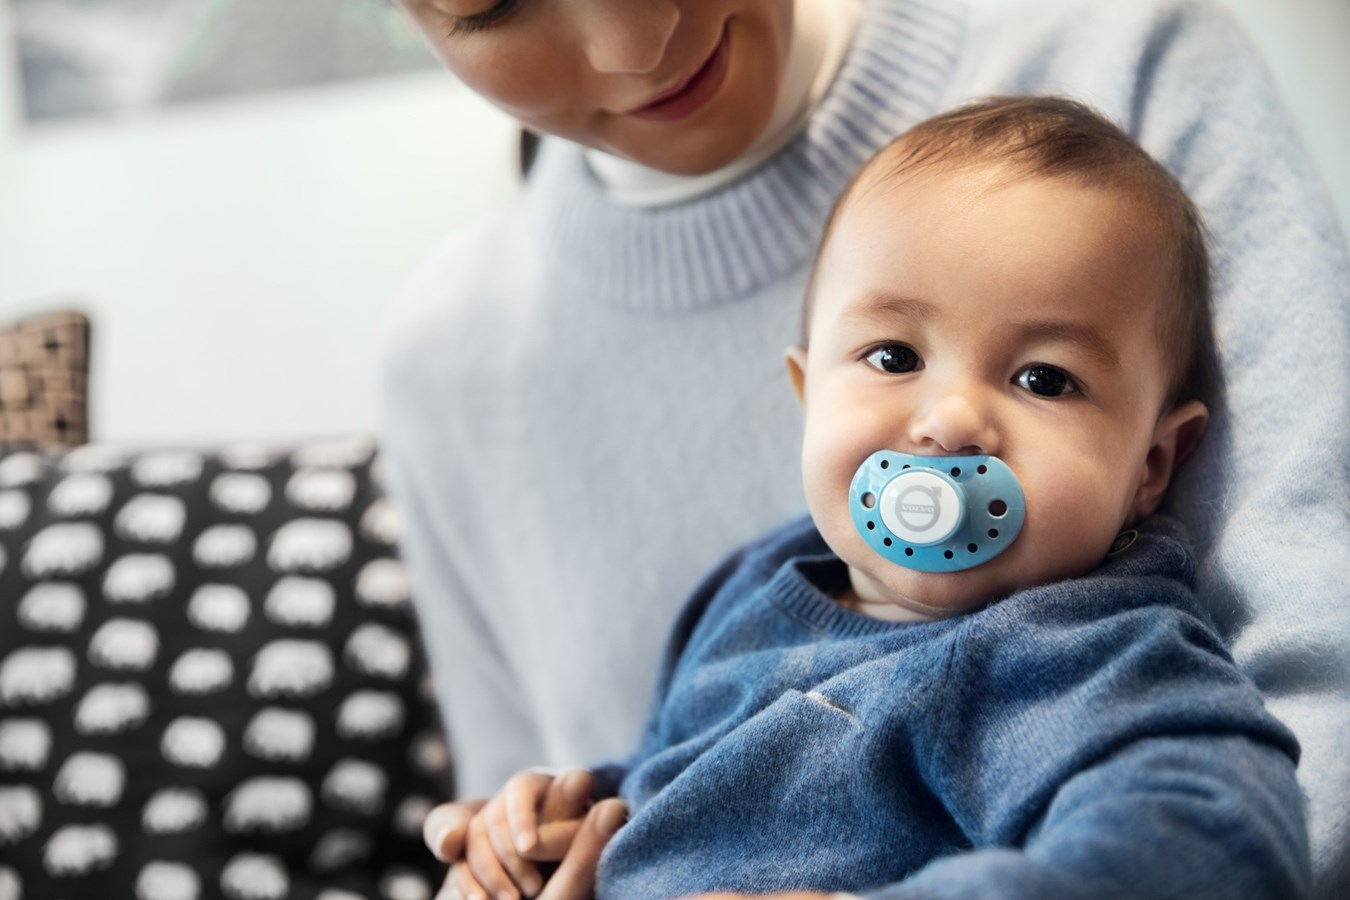 Families at Volvo Cars